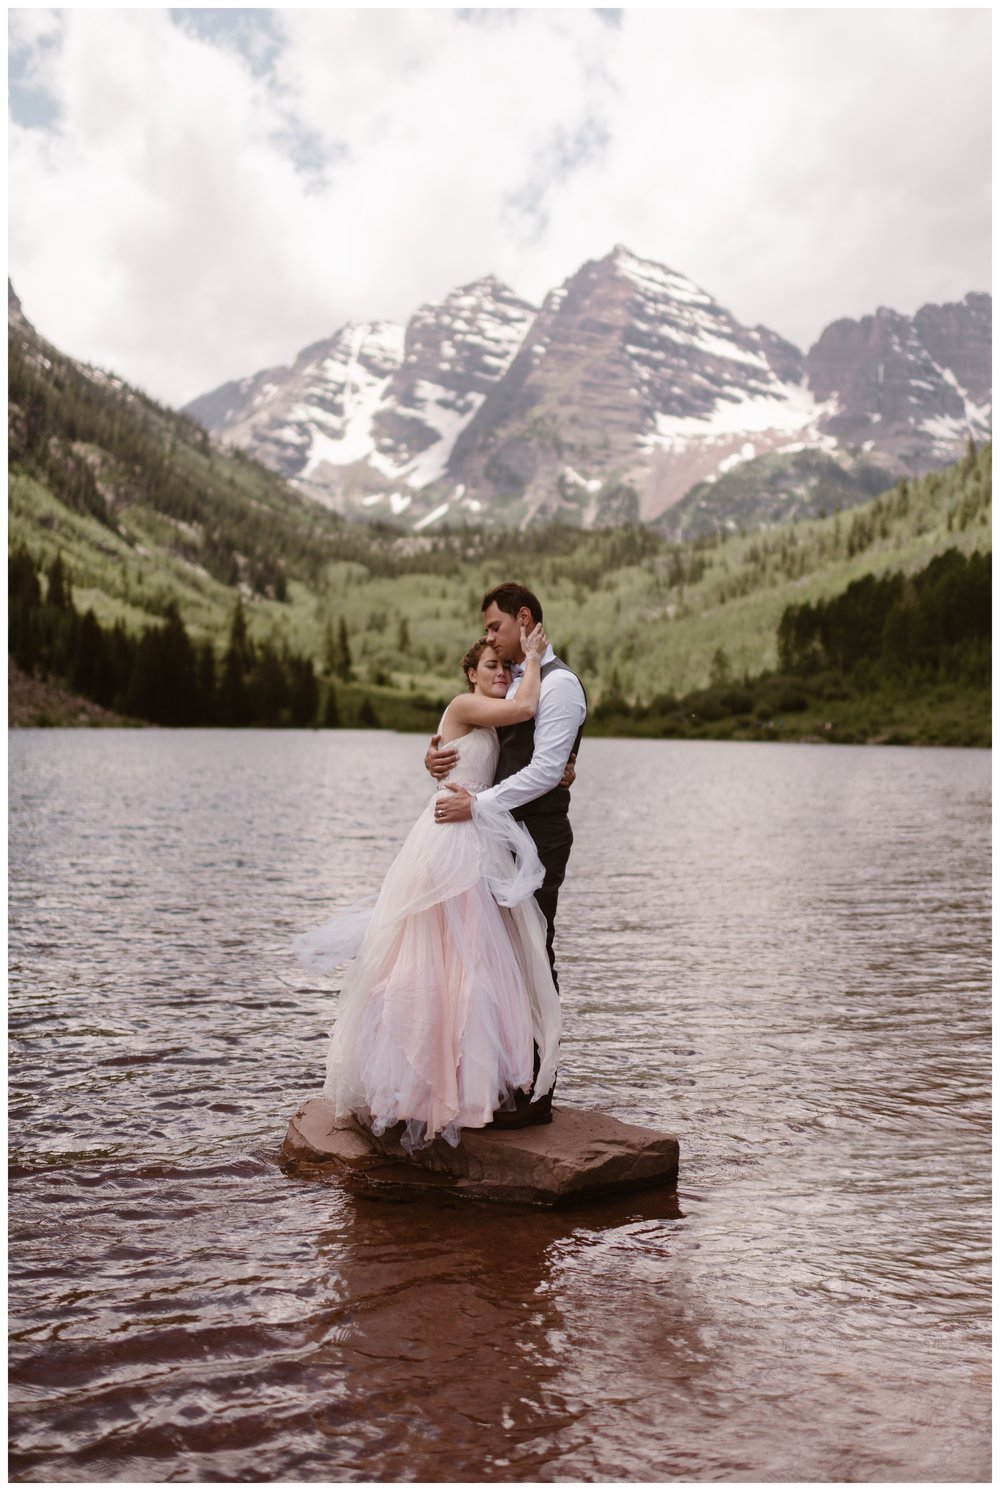 The Maroon Bells of Aspen, Colorado make for a stunning background for Marcela and Vasily's intimate elopement day. Photo by Maddie Mae, Adventure Instead.